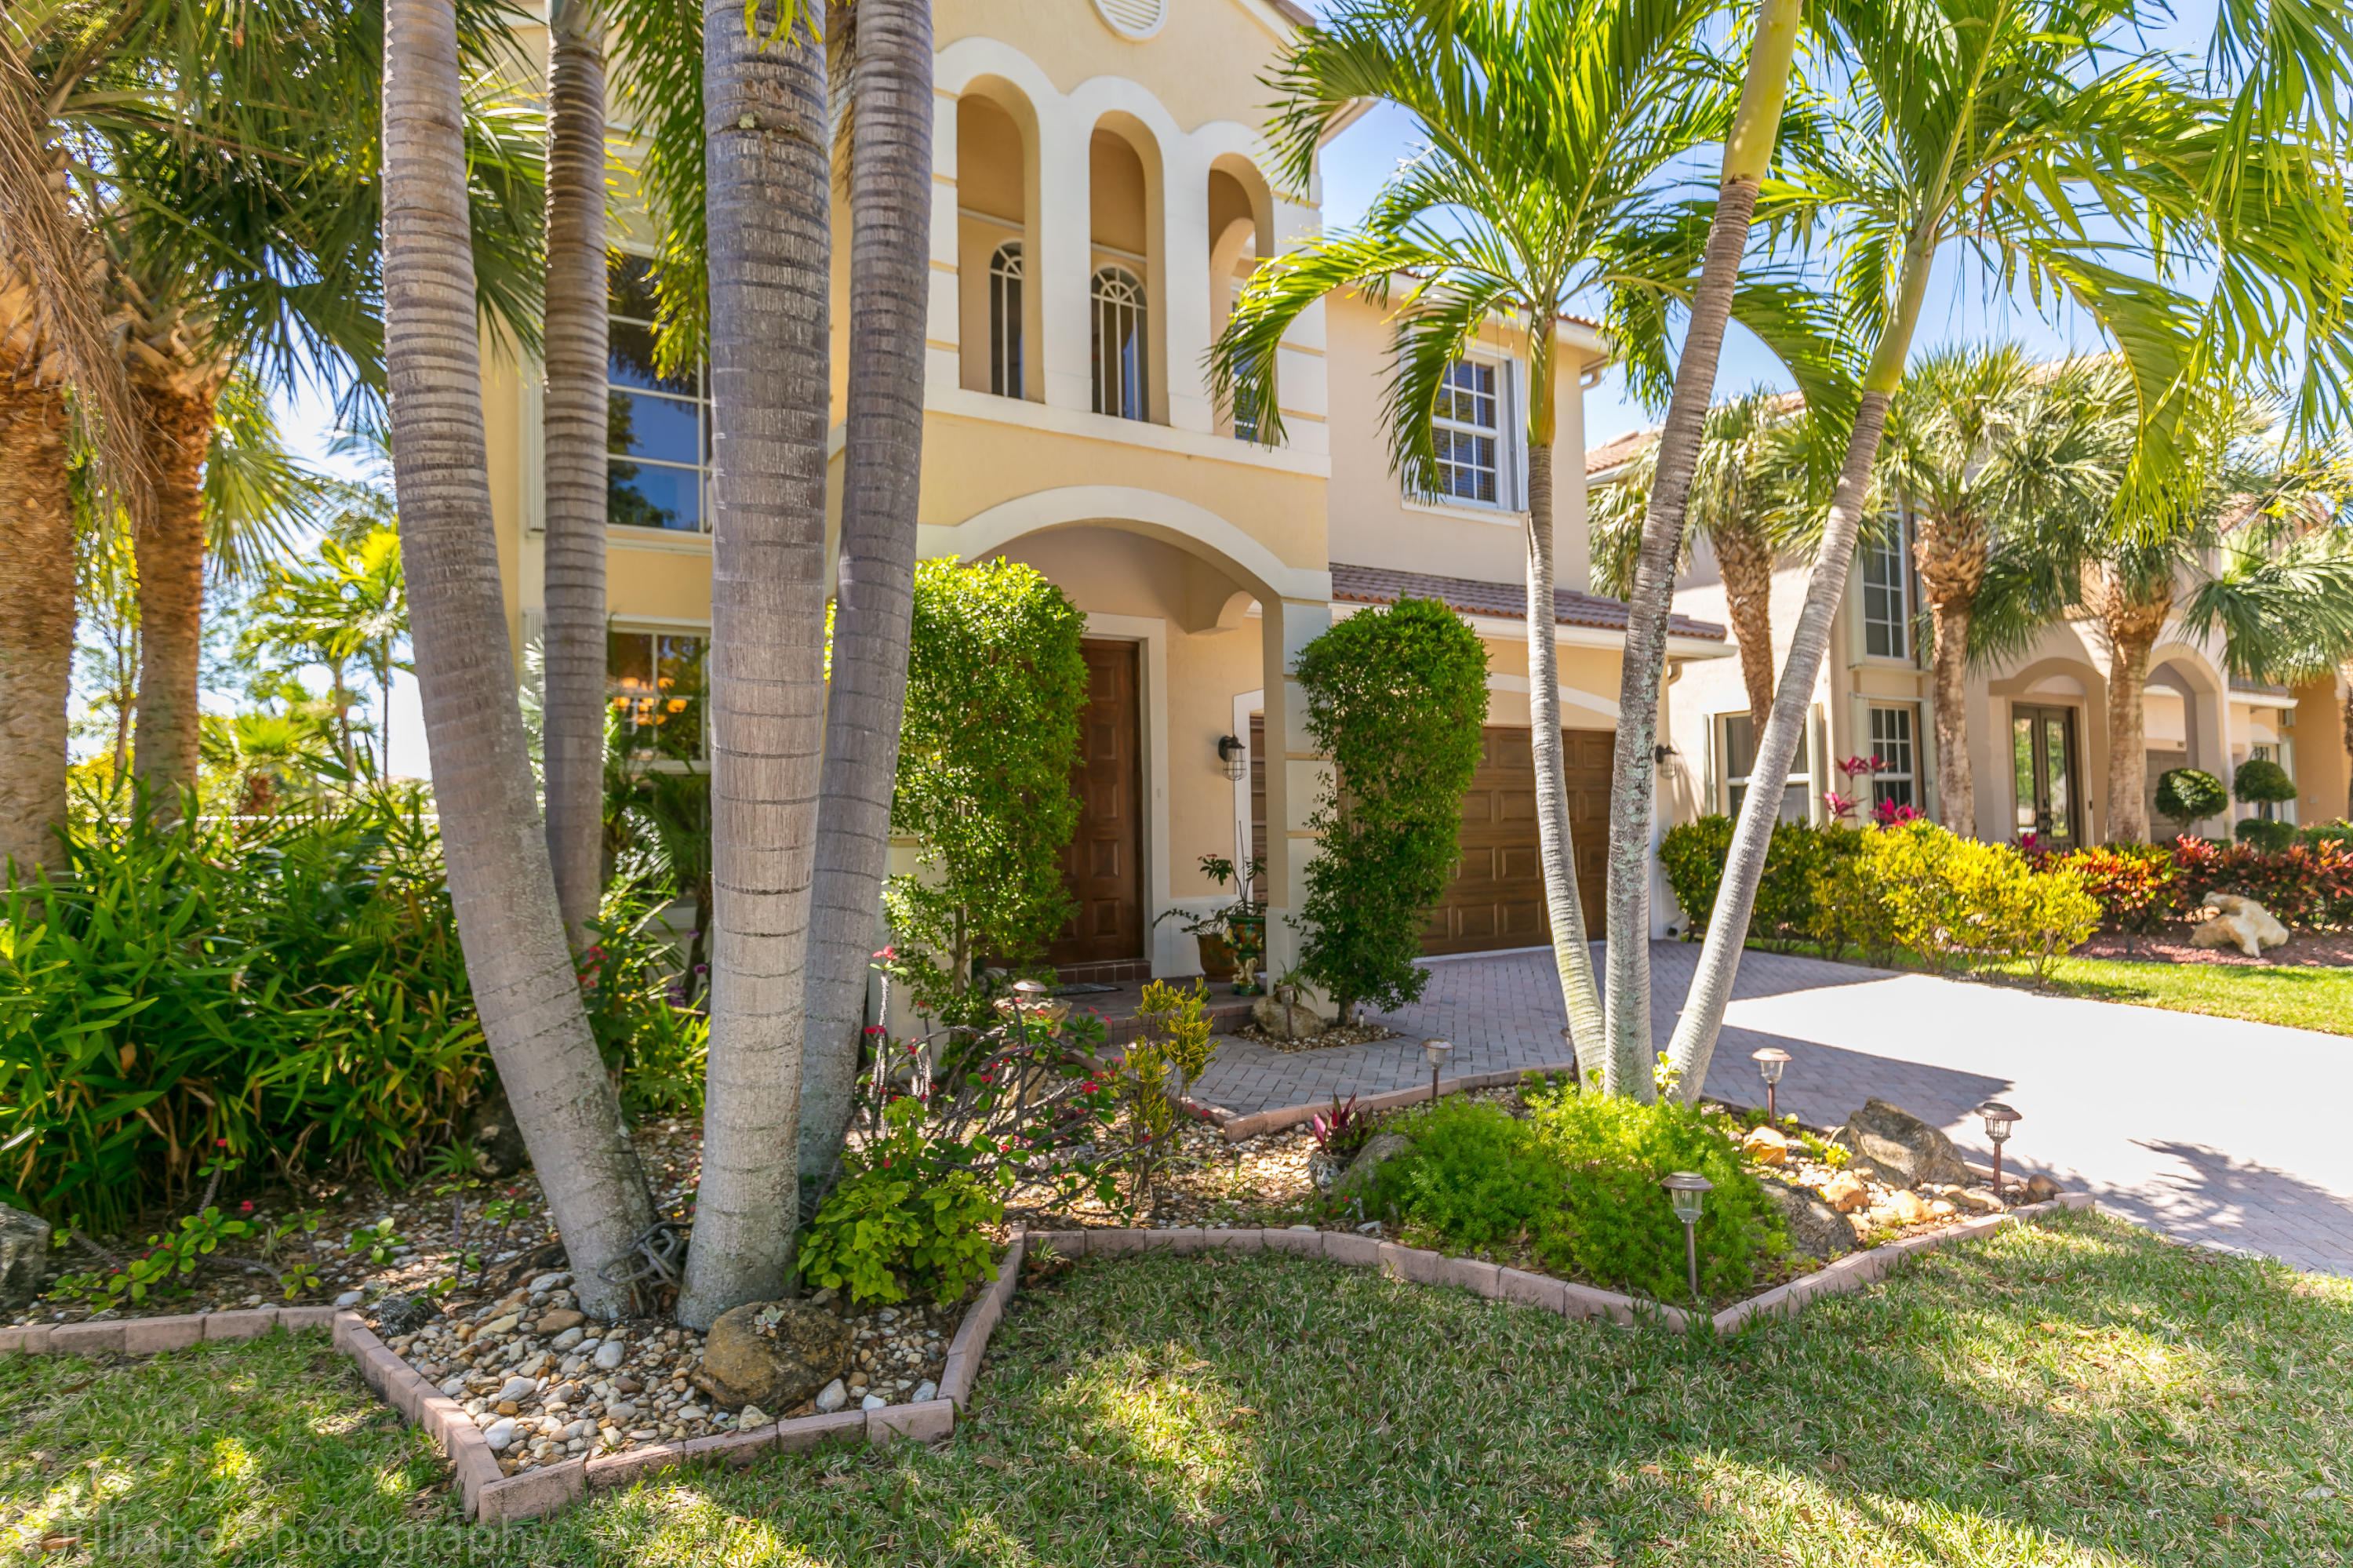 Home for sale in Winterplace Delray Beach Florida